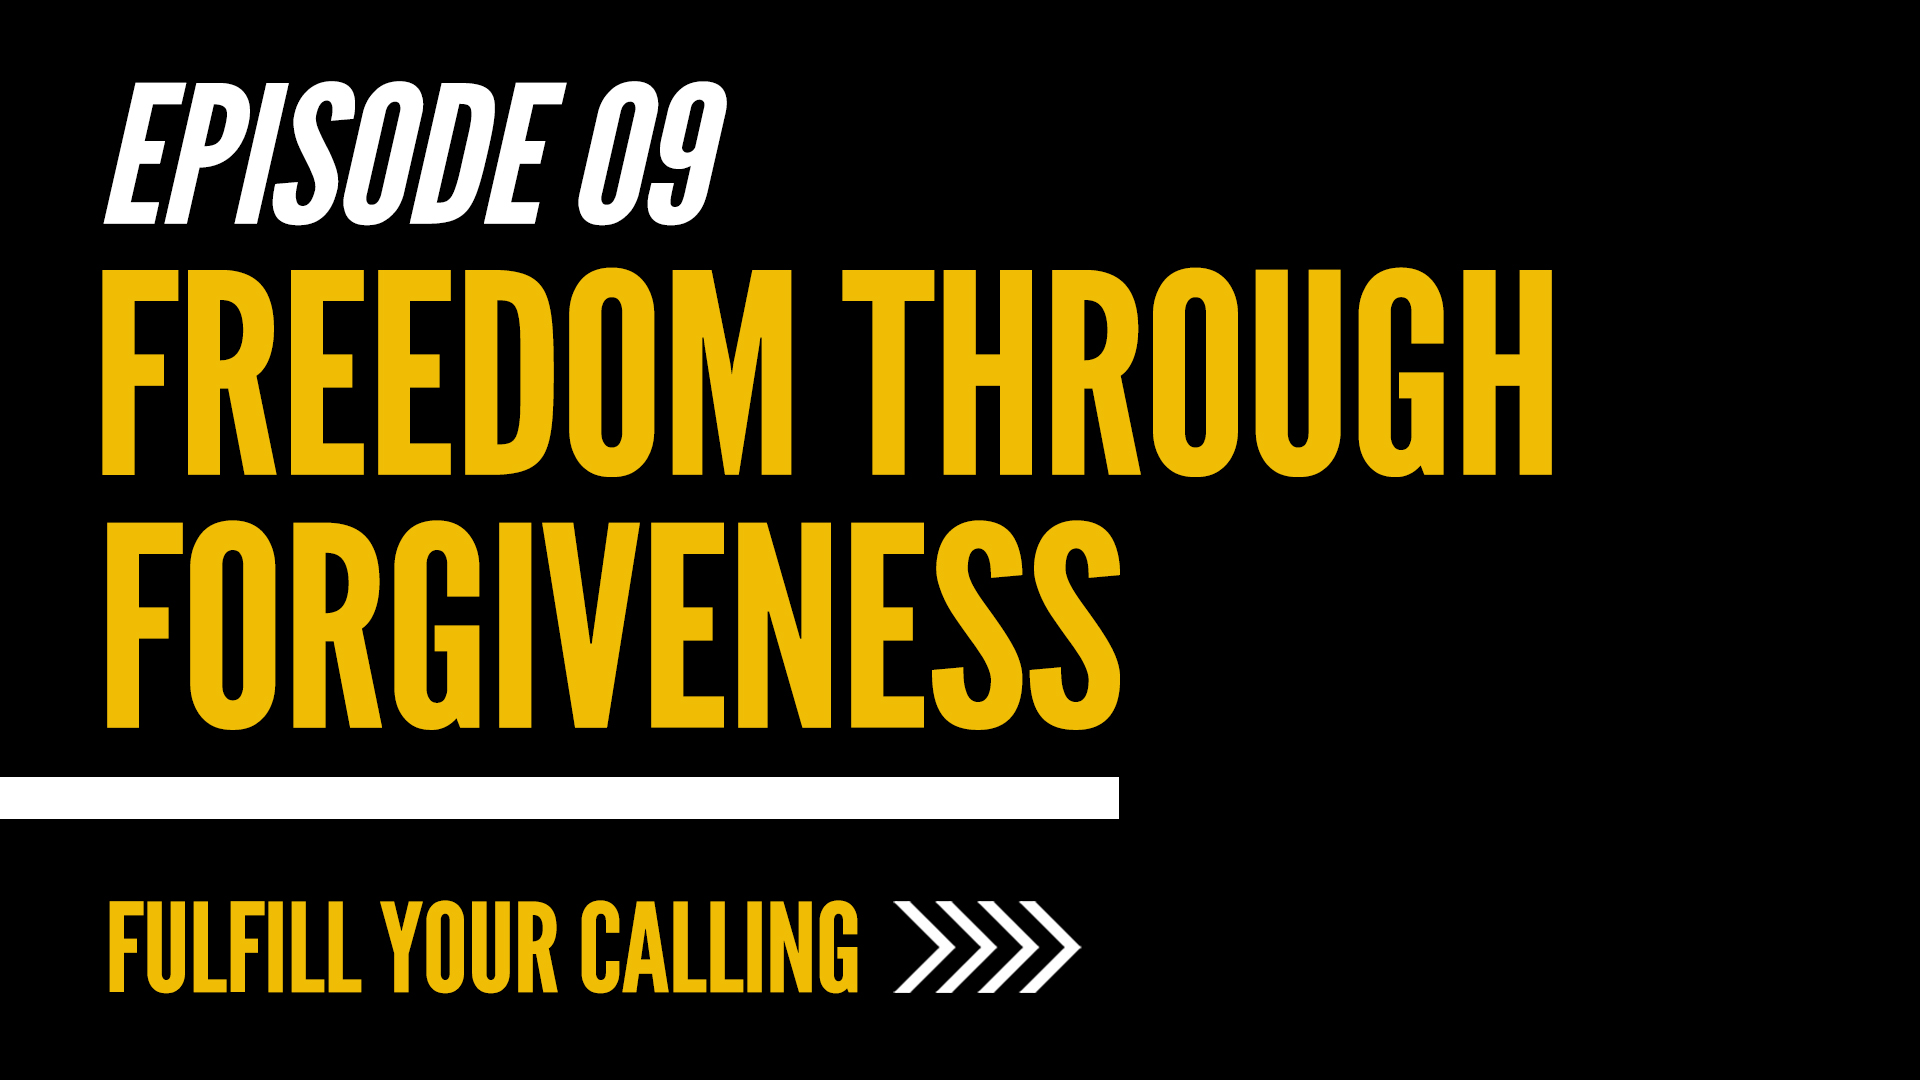 How to Fulfill Your Calling - Episode 9 with David Steele